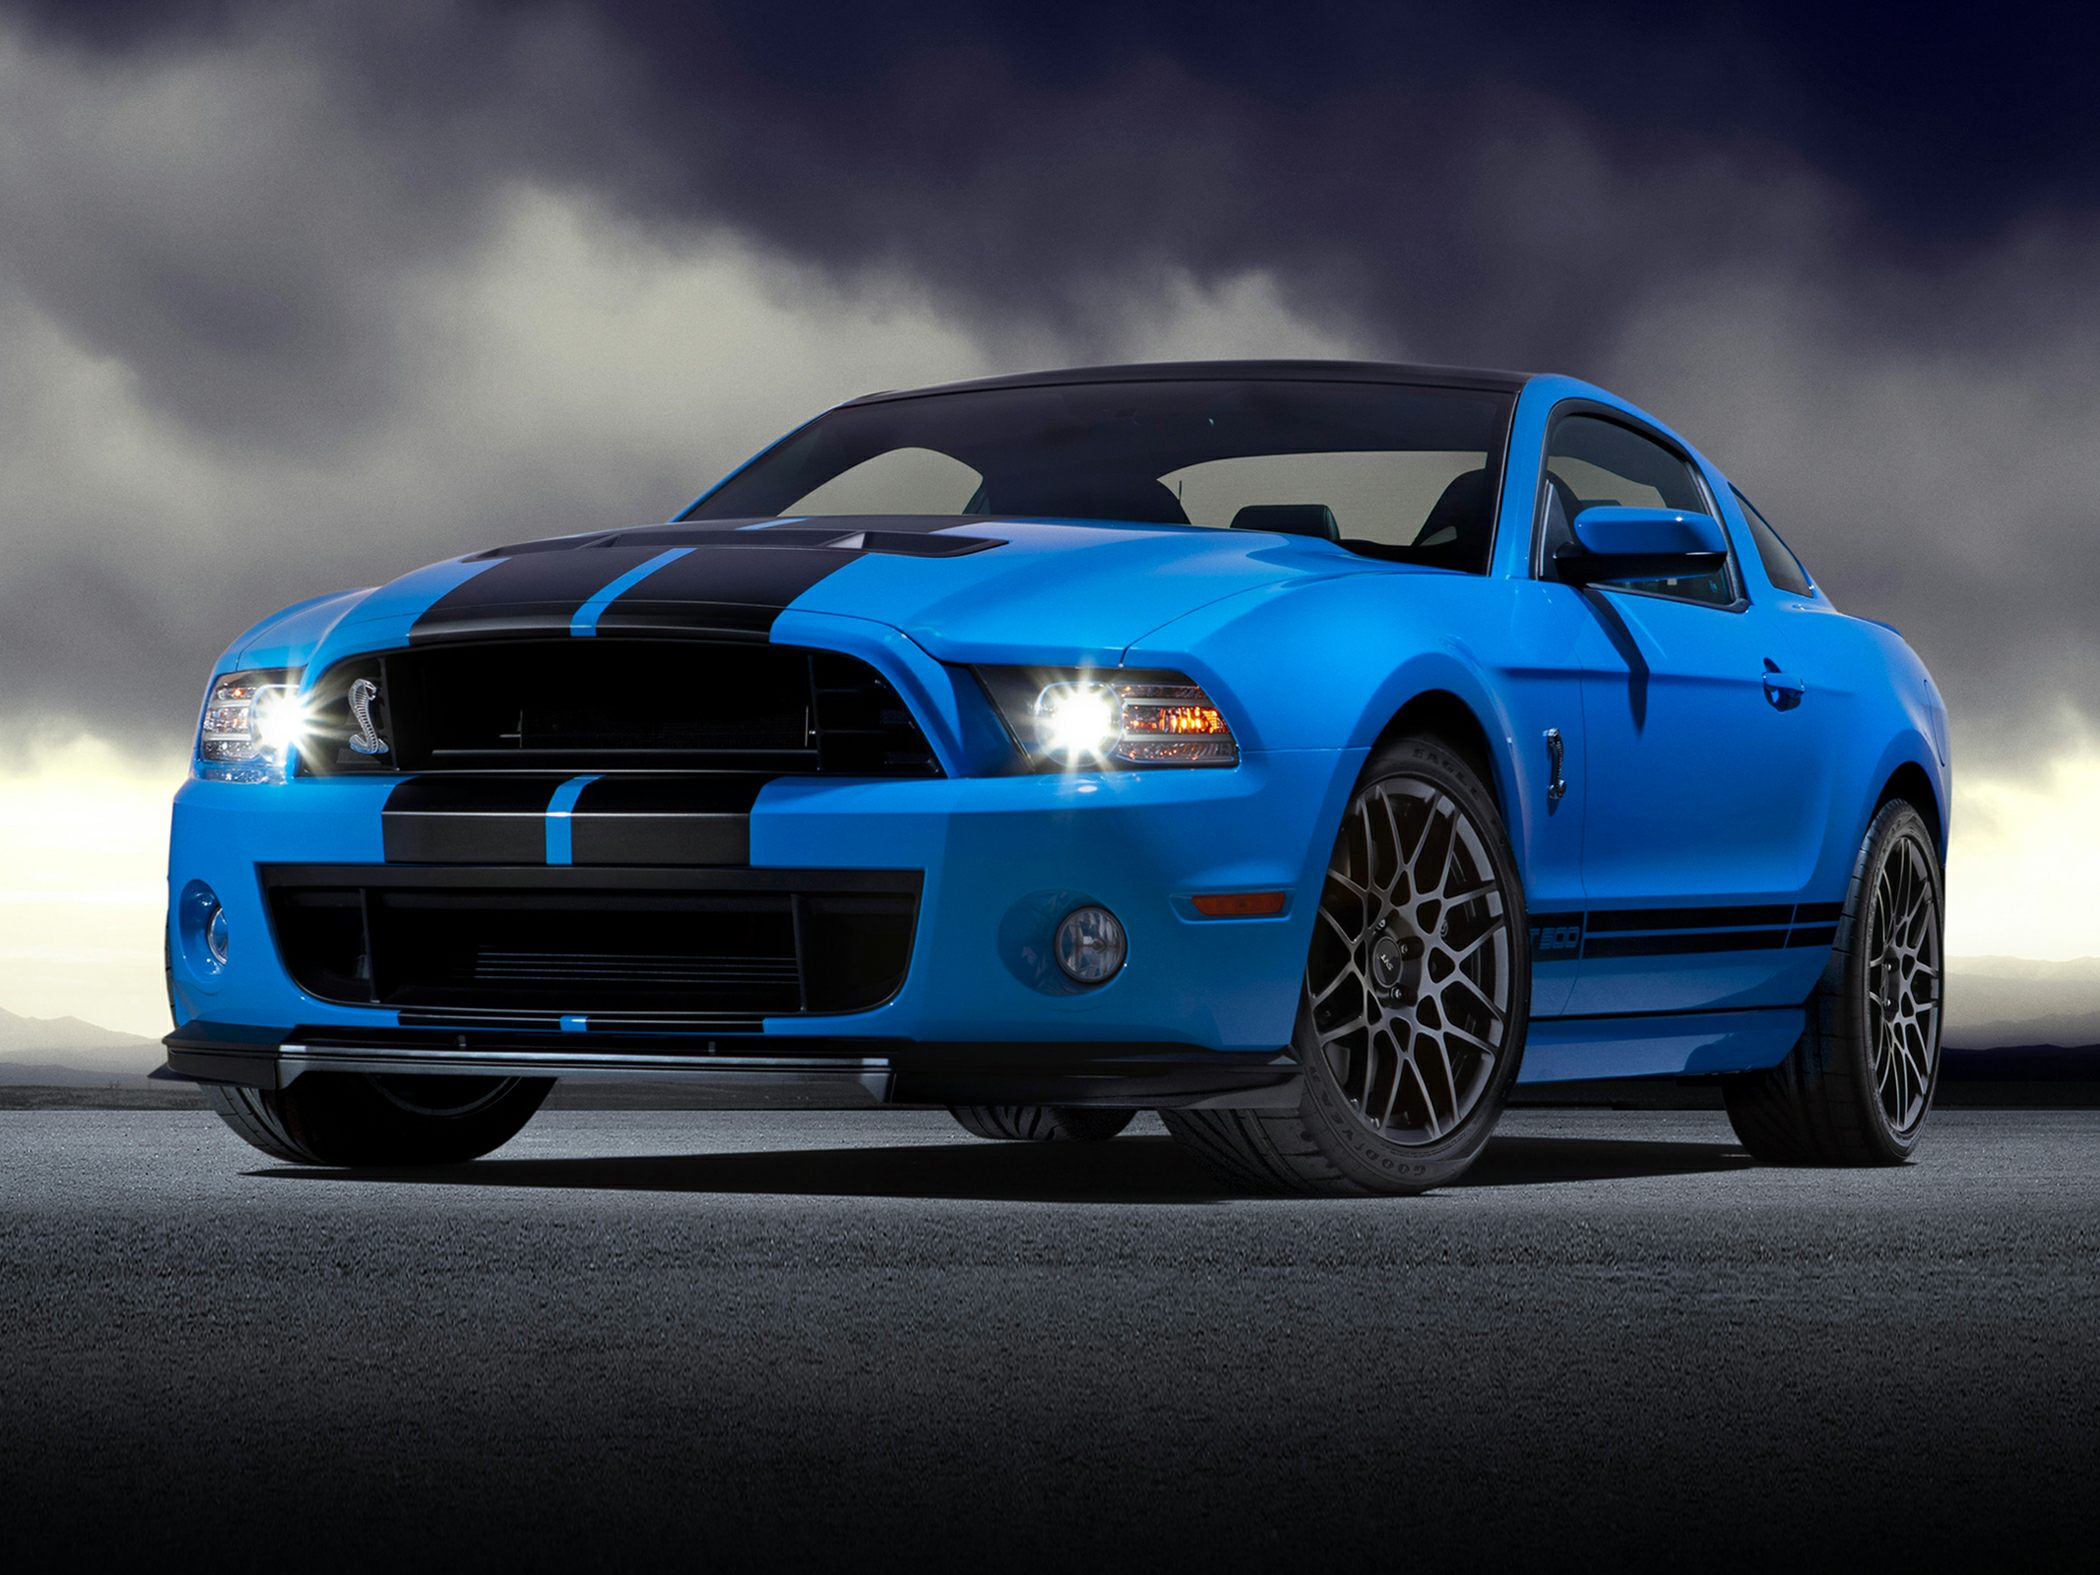 2014 Ford Shelby GT500 Glam